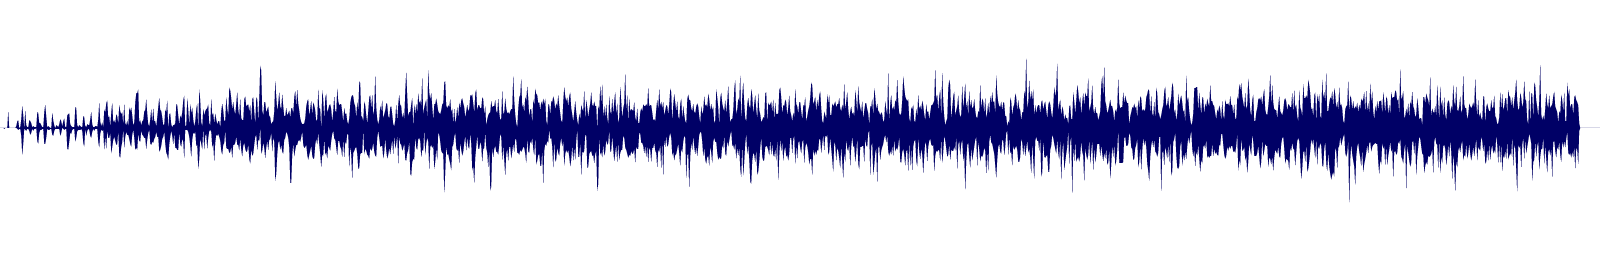 waveform of track #90521